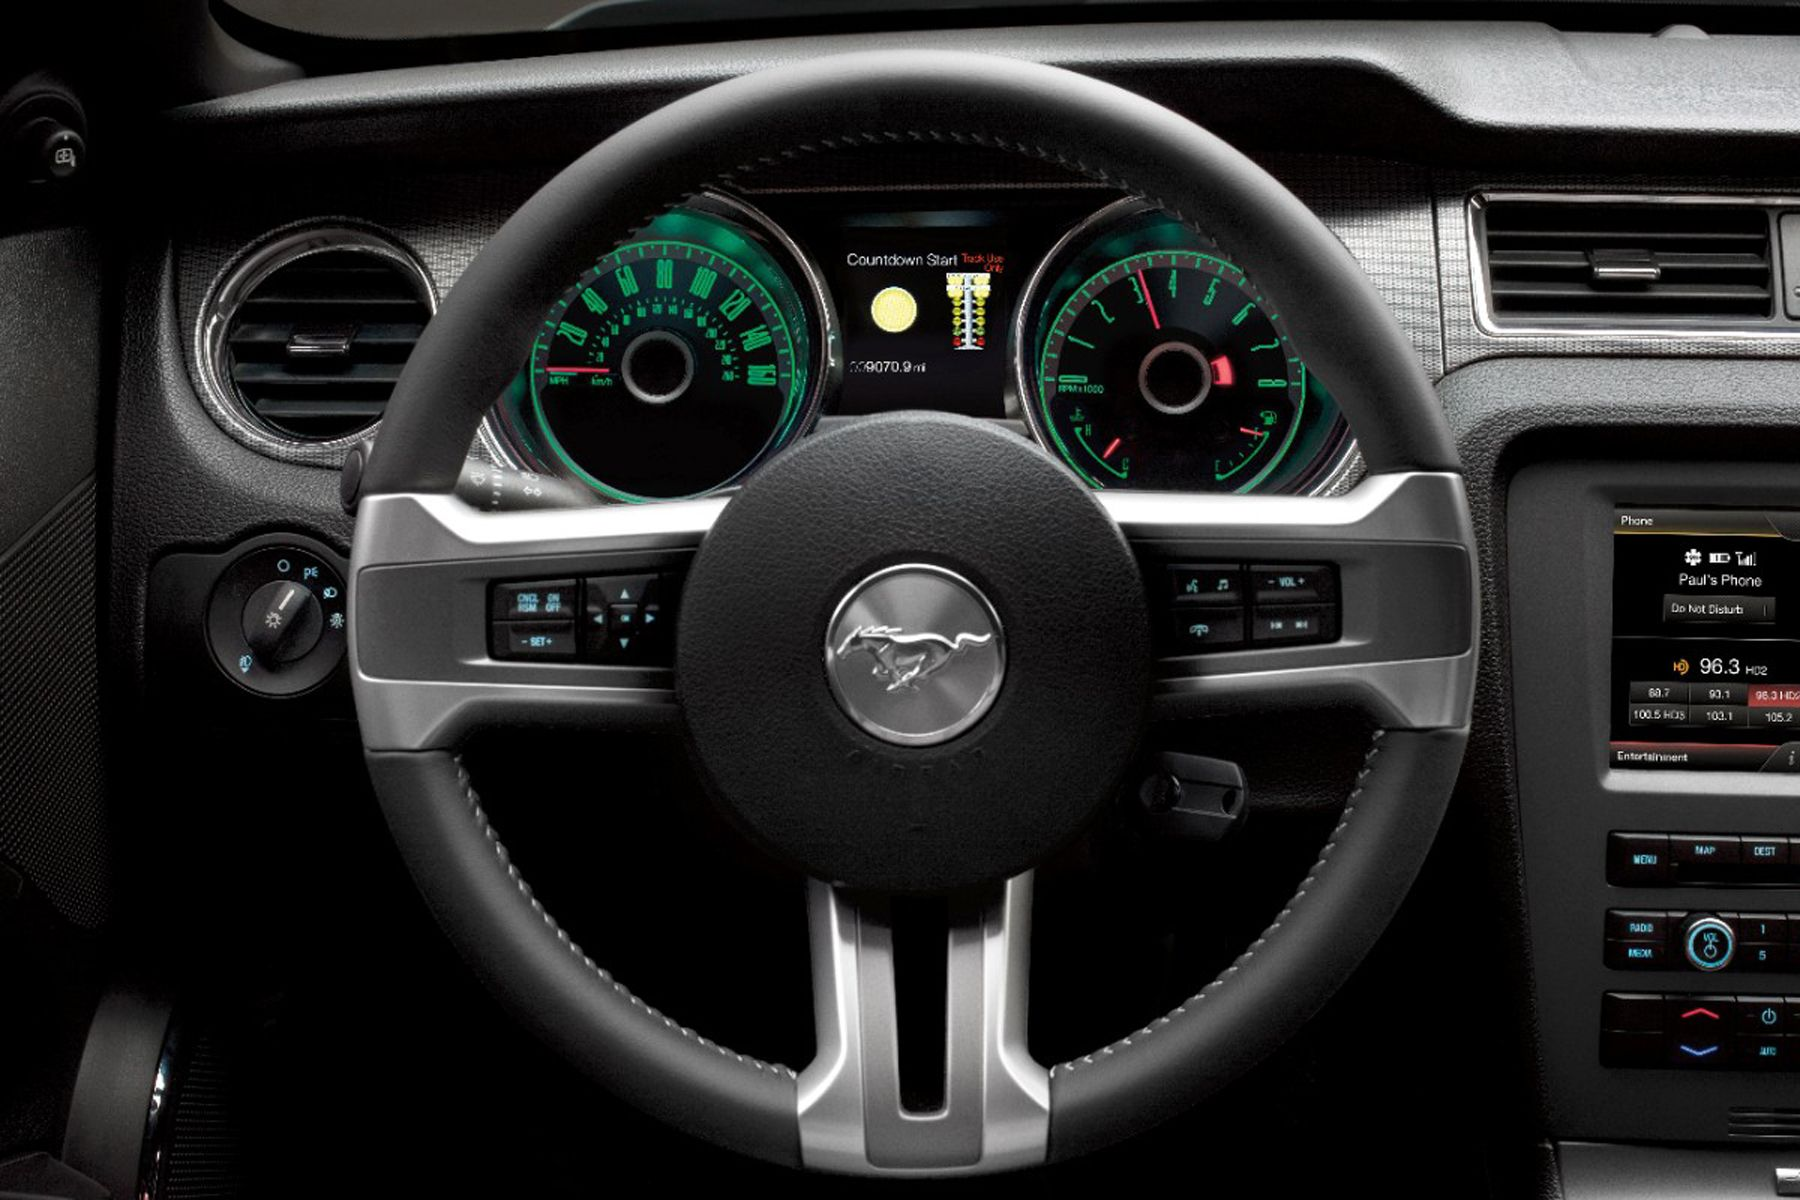 2014 Ford Mustang Gt Interior Steering Wheel Photo 16 2014 Ford